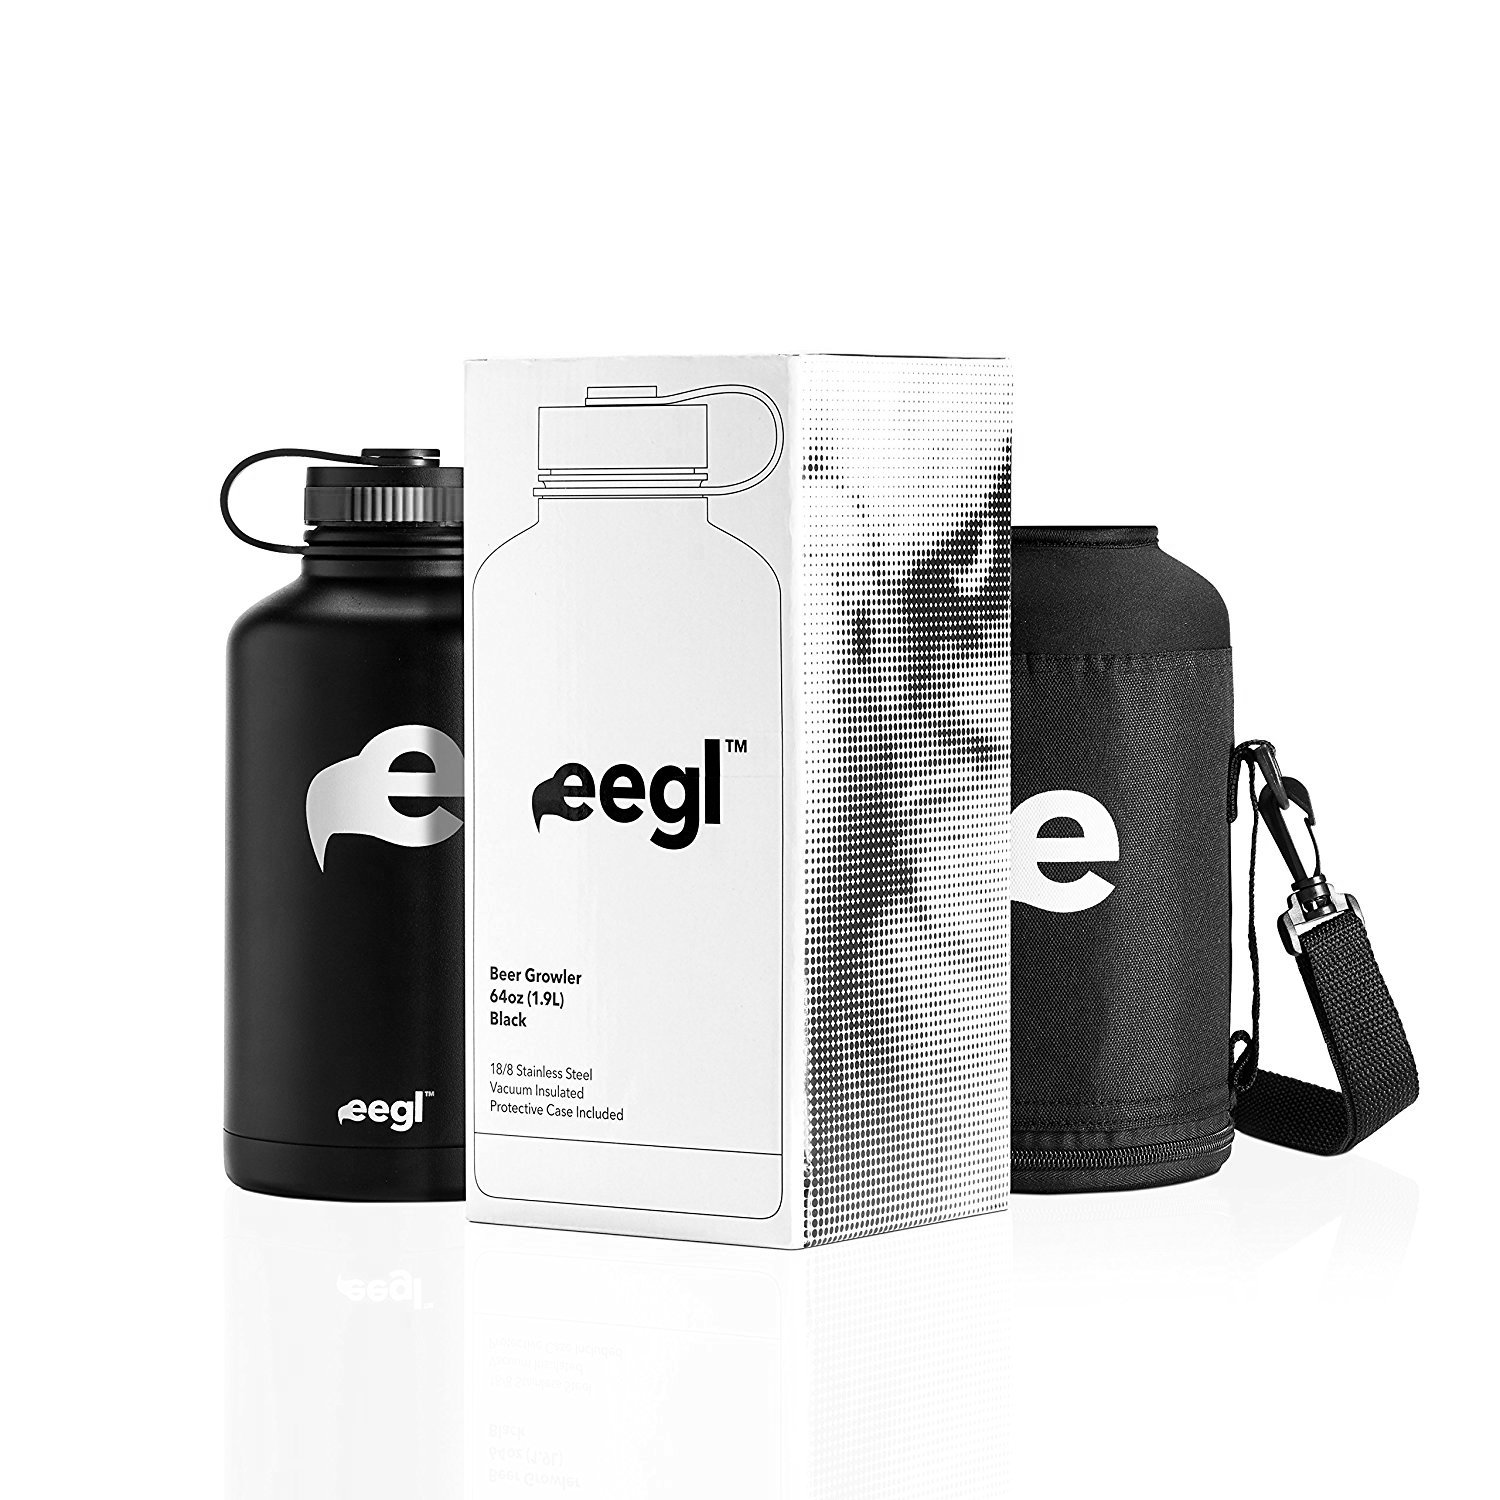 Stainless Steel Insulated Beer Growler - 64 oz Water Bottle - Includes Carry Case - Double Wall Vacuum Sealed Wide Mouth Design. Five Year Guarantee! Perfect Temperature Control from eegl by eegl (Image #6)